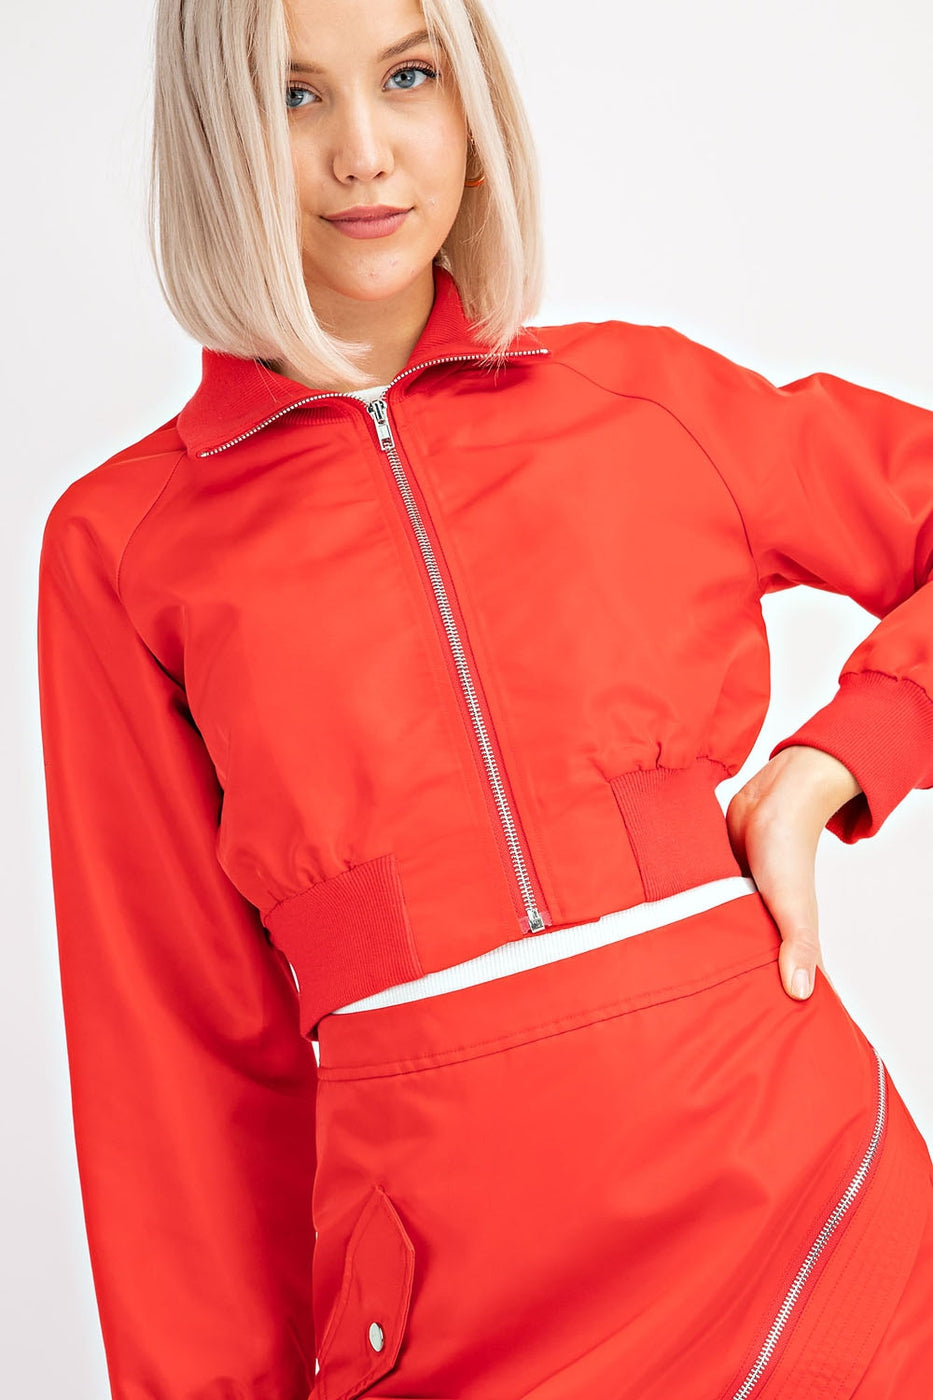 Cropped Bomber Jacket In Red Siin Bees